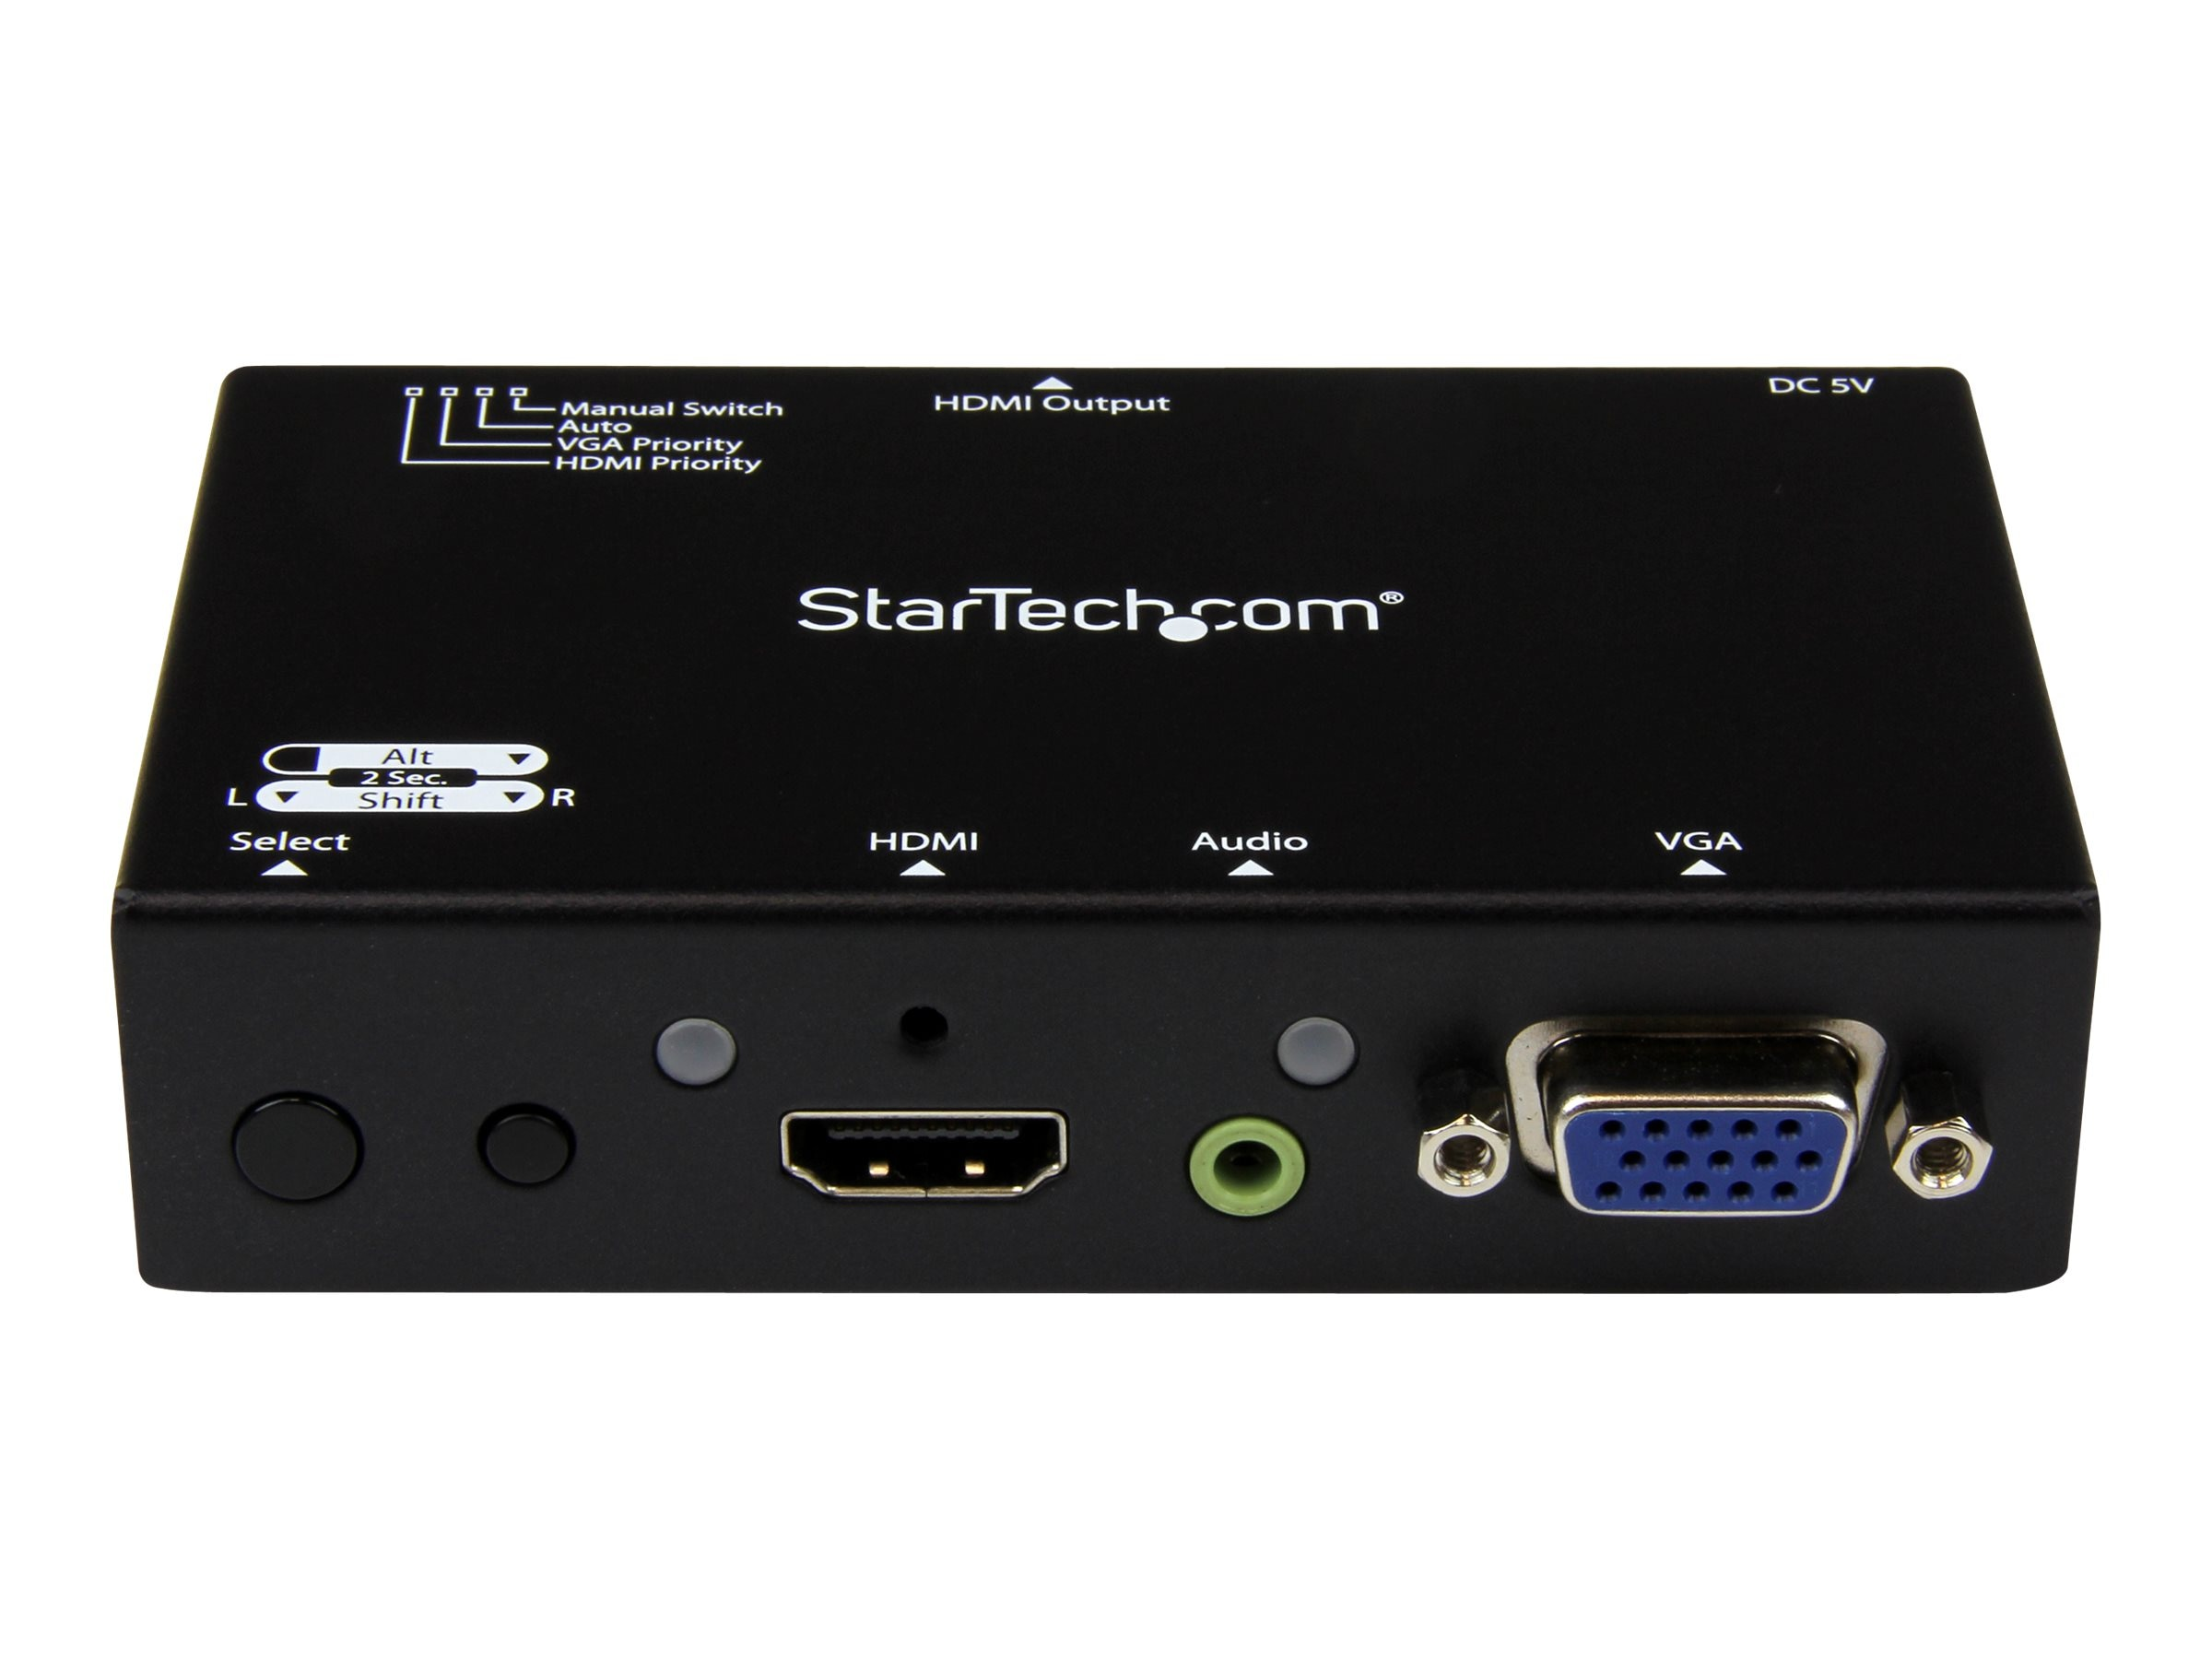 StarTech.com 2x1 HDMI + VGA to HDMI Converter Switch with Automatic and Priority Switching, 1080p, VS221VGA2HD